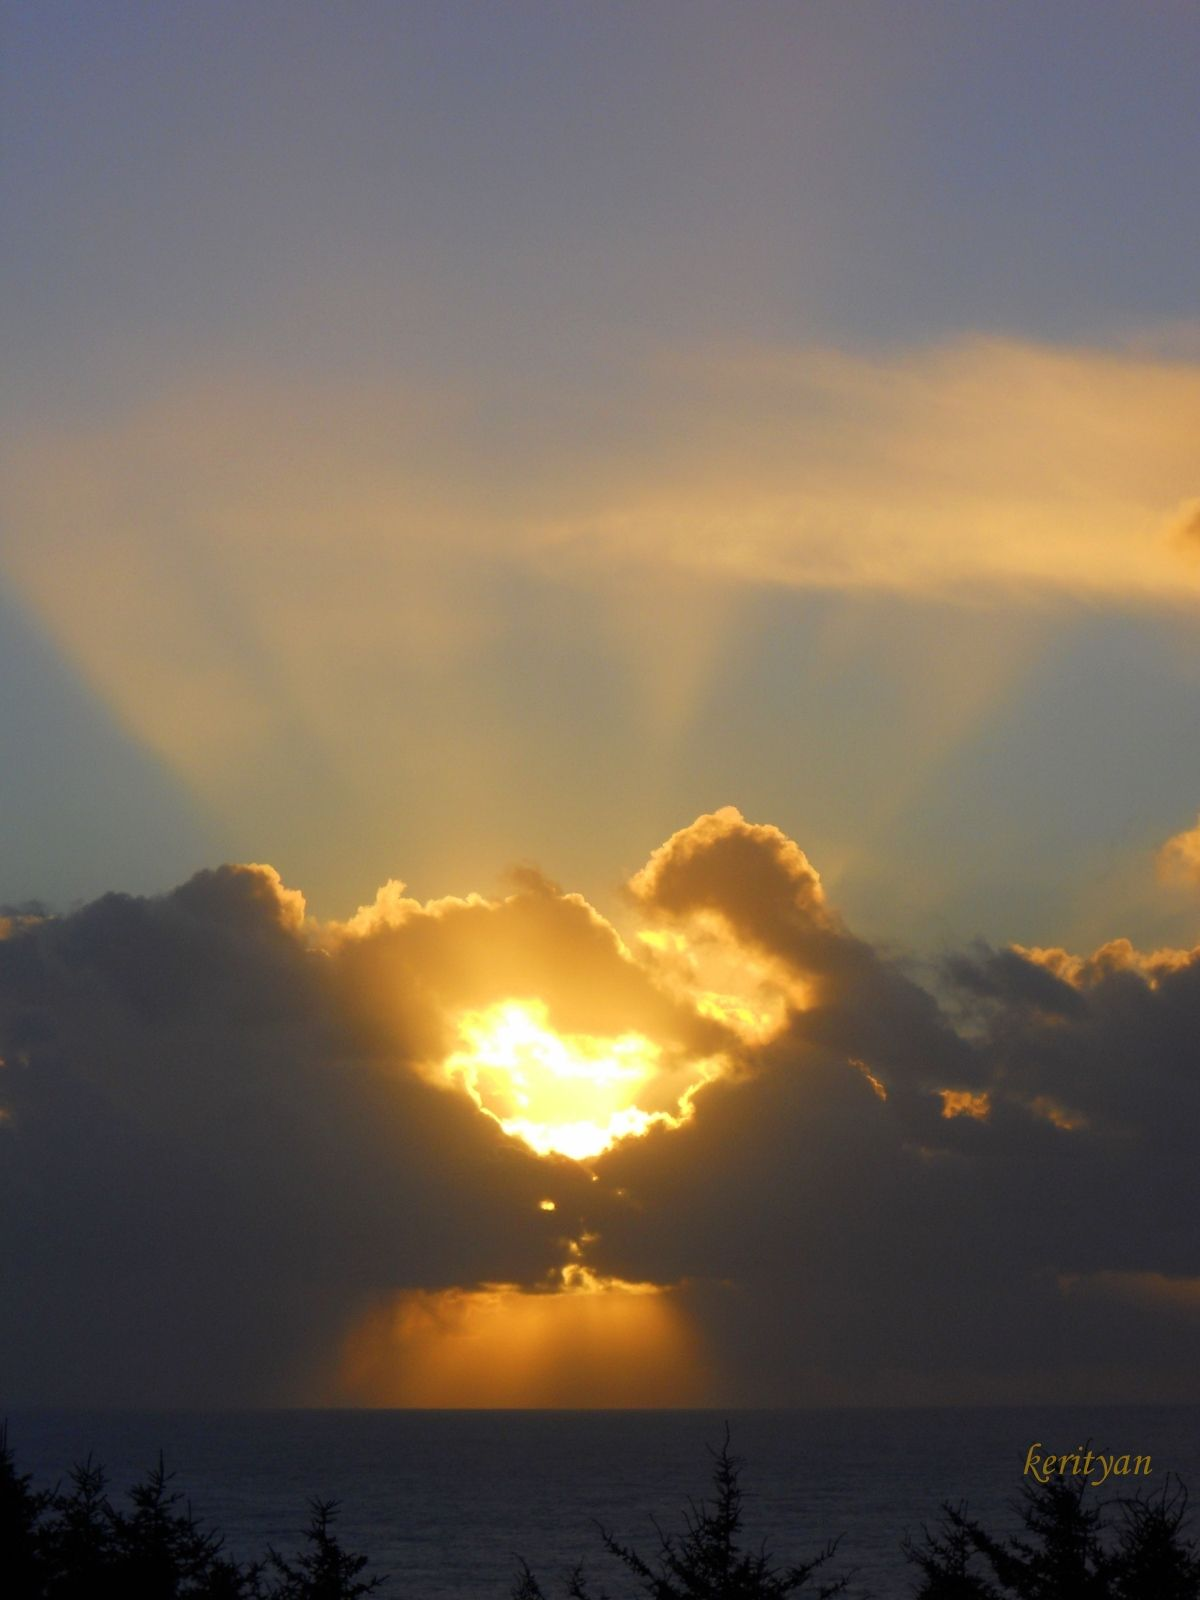 This was an Amazing hour I spent taking shots of this particular sunset. and this shot was the shot of the day! I named it, Clouds Capturing the Sun. It is NOT photoshopped! It is quite simply, God's creation.